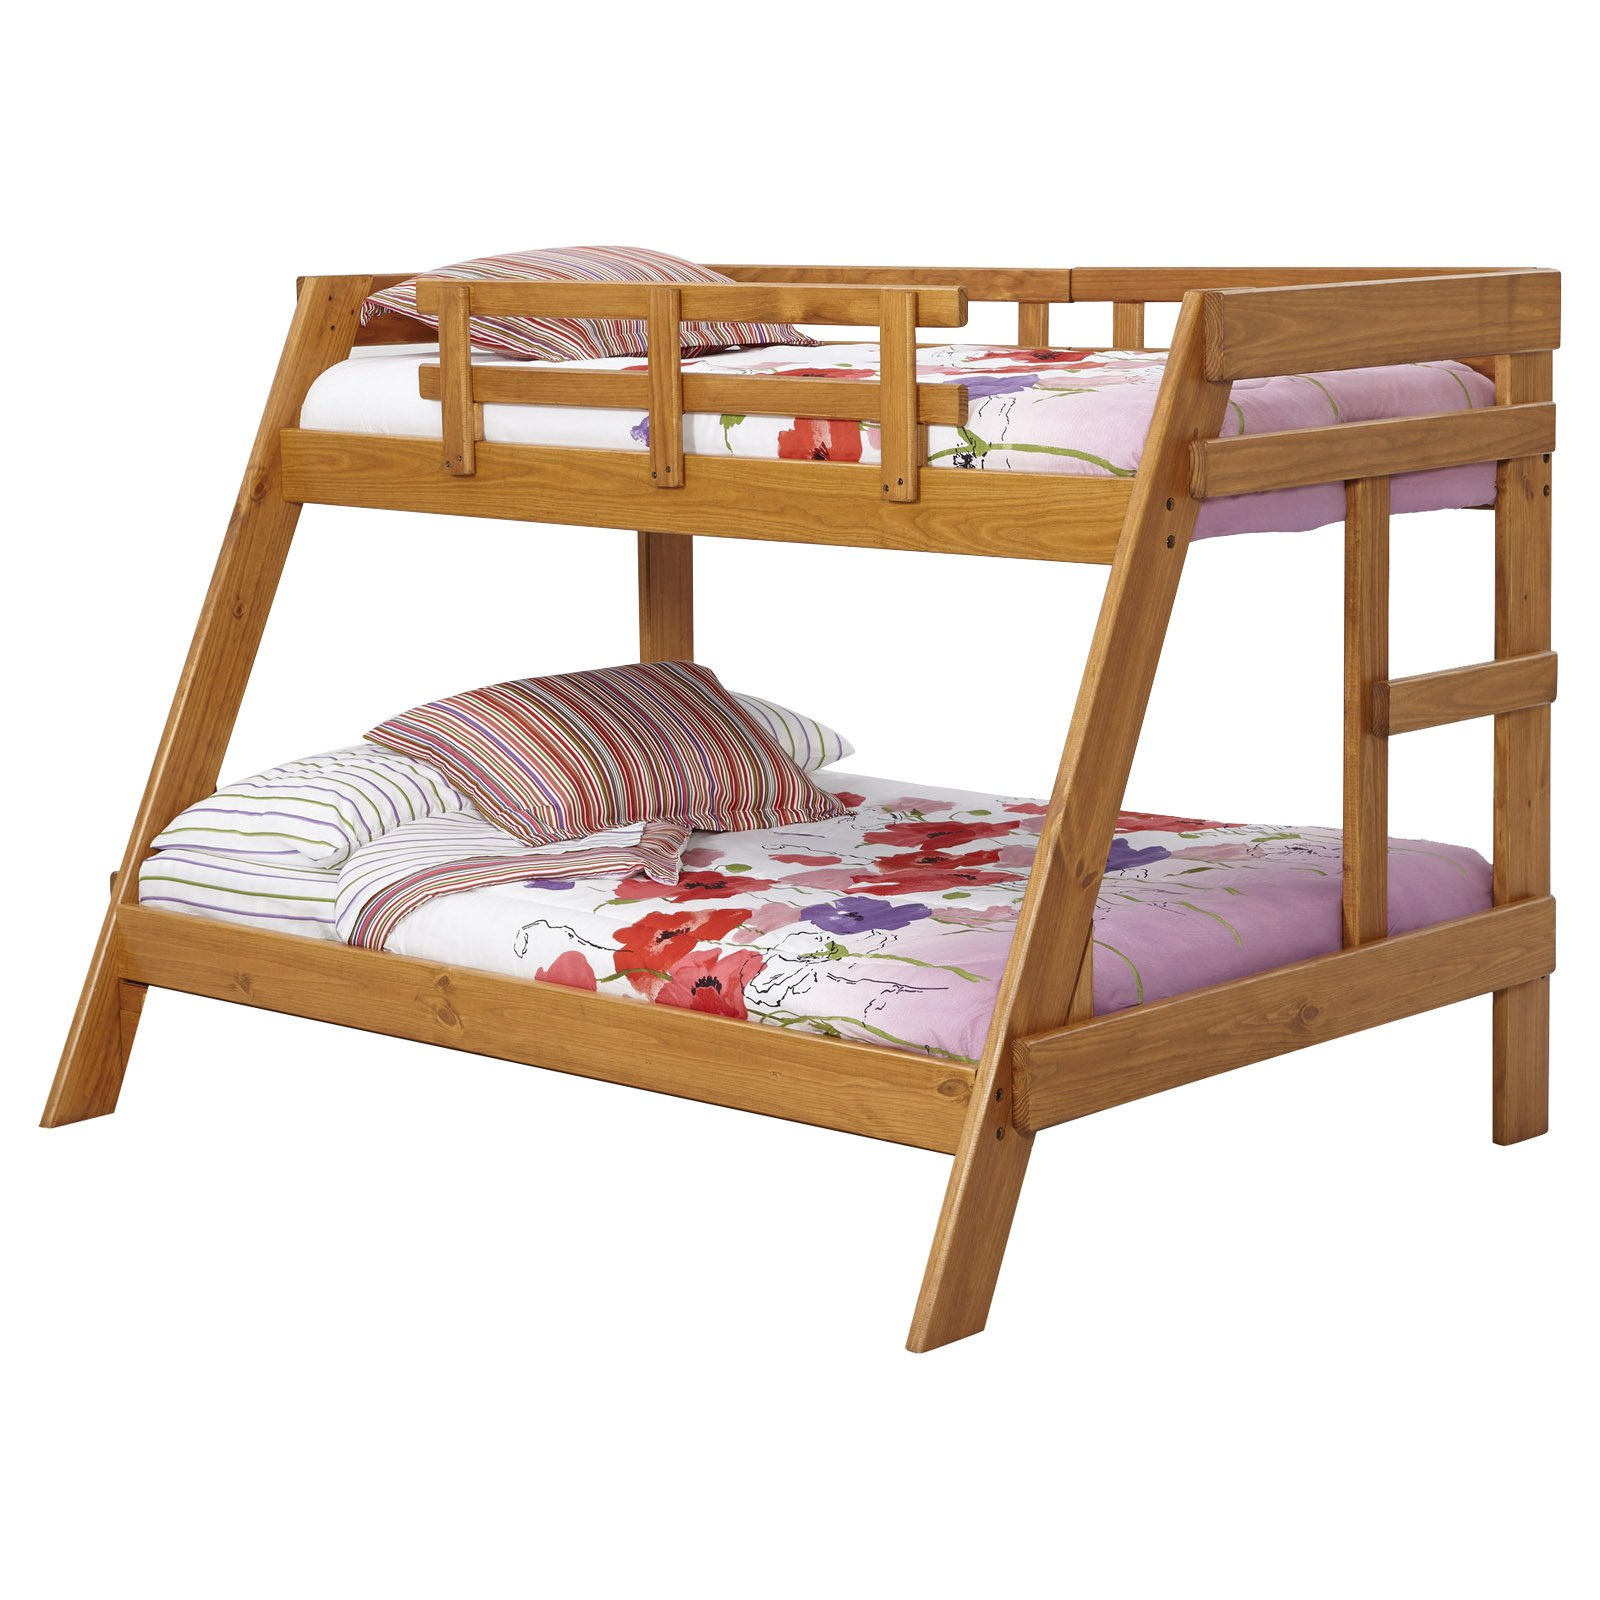 Woodcrest Heartland Twin over Full Bunk Bed